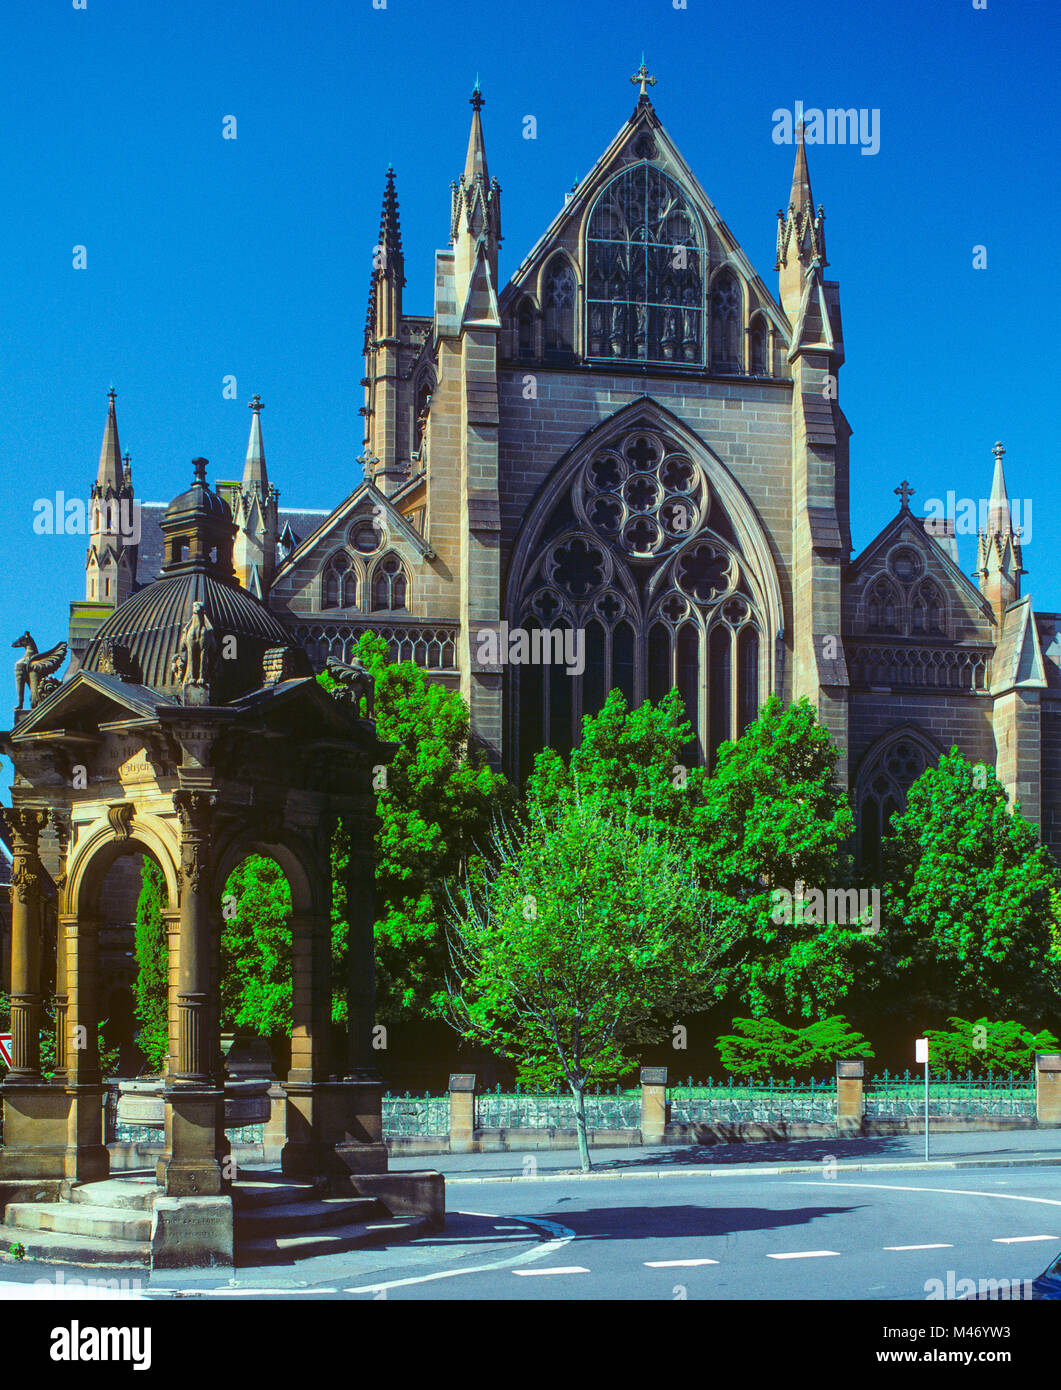 The Frazer Fountain seen at the northern end of St Mary's Cathdral in Sydney at Prince Albert Road near St Mary's - Stock Image